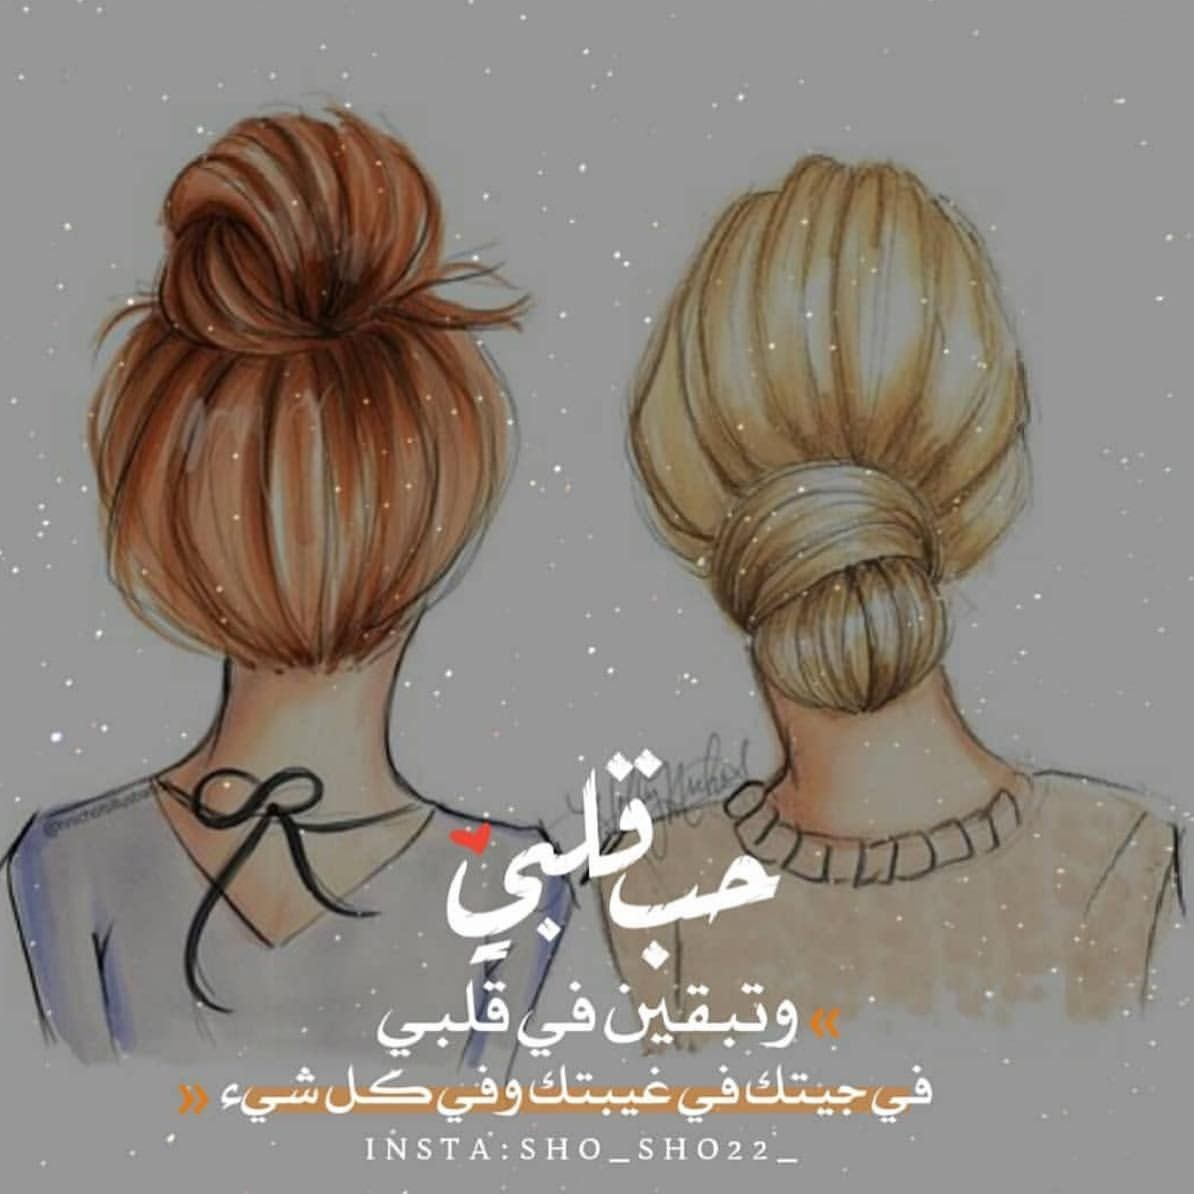 Pin By Bosy On صديقتي Friendship Wall Art Friends Quotes Arabic Memes